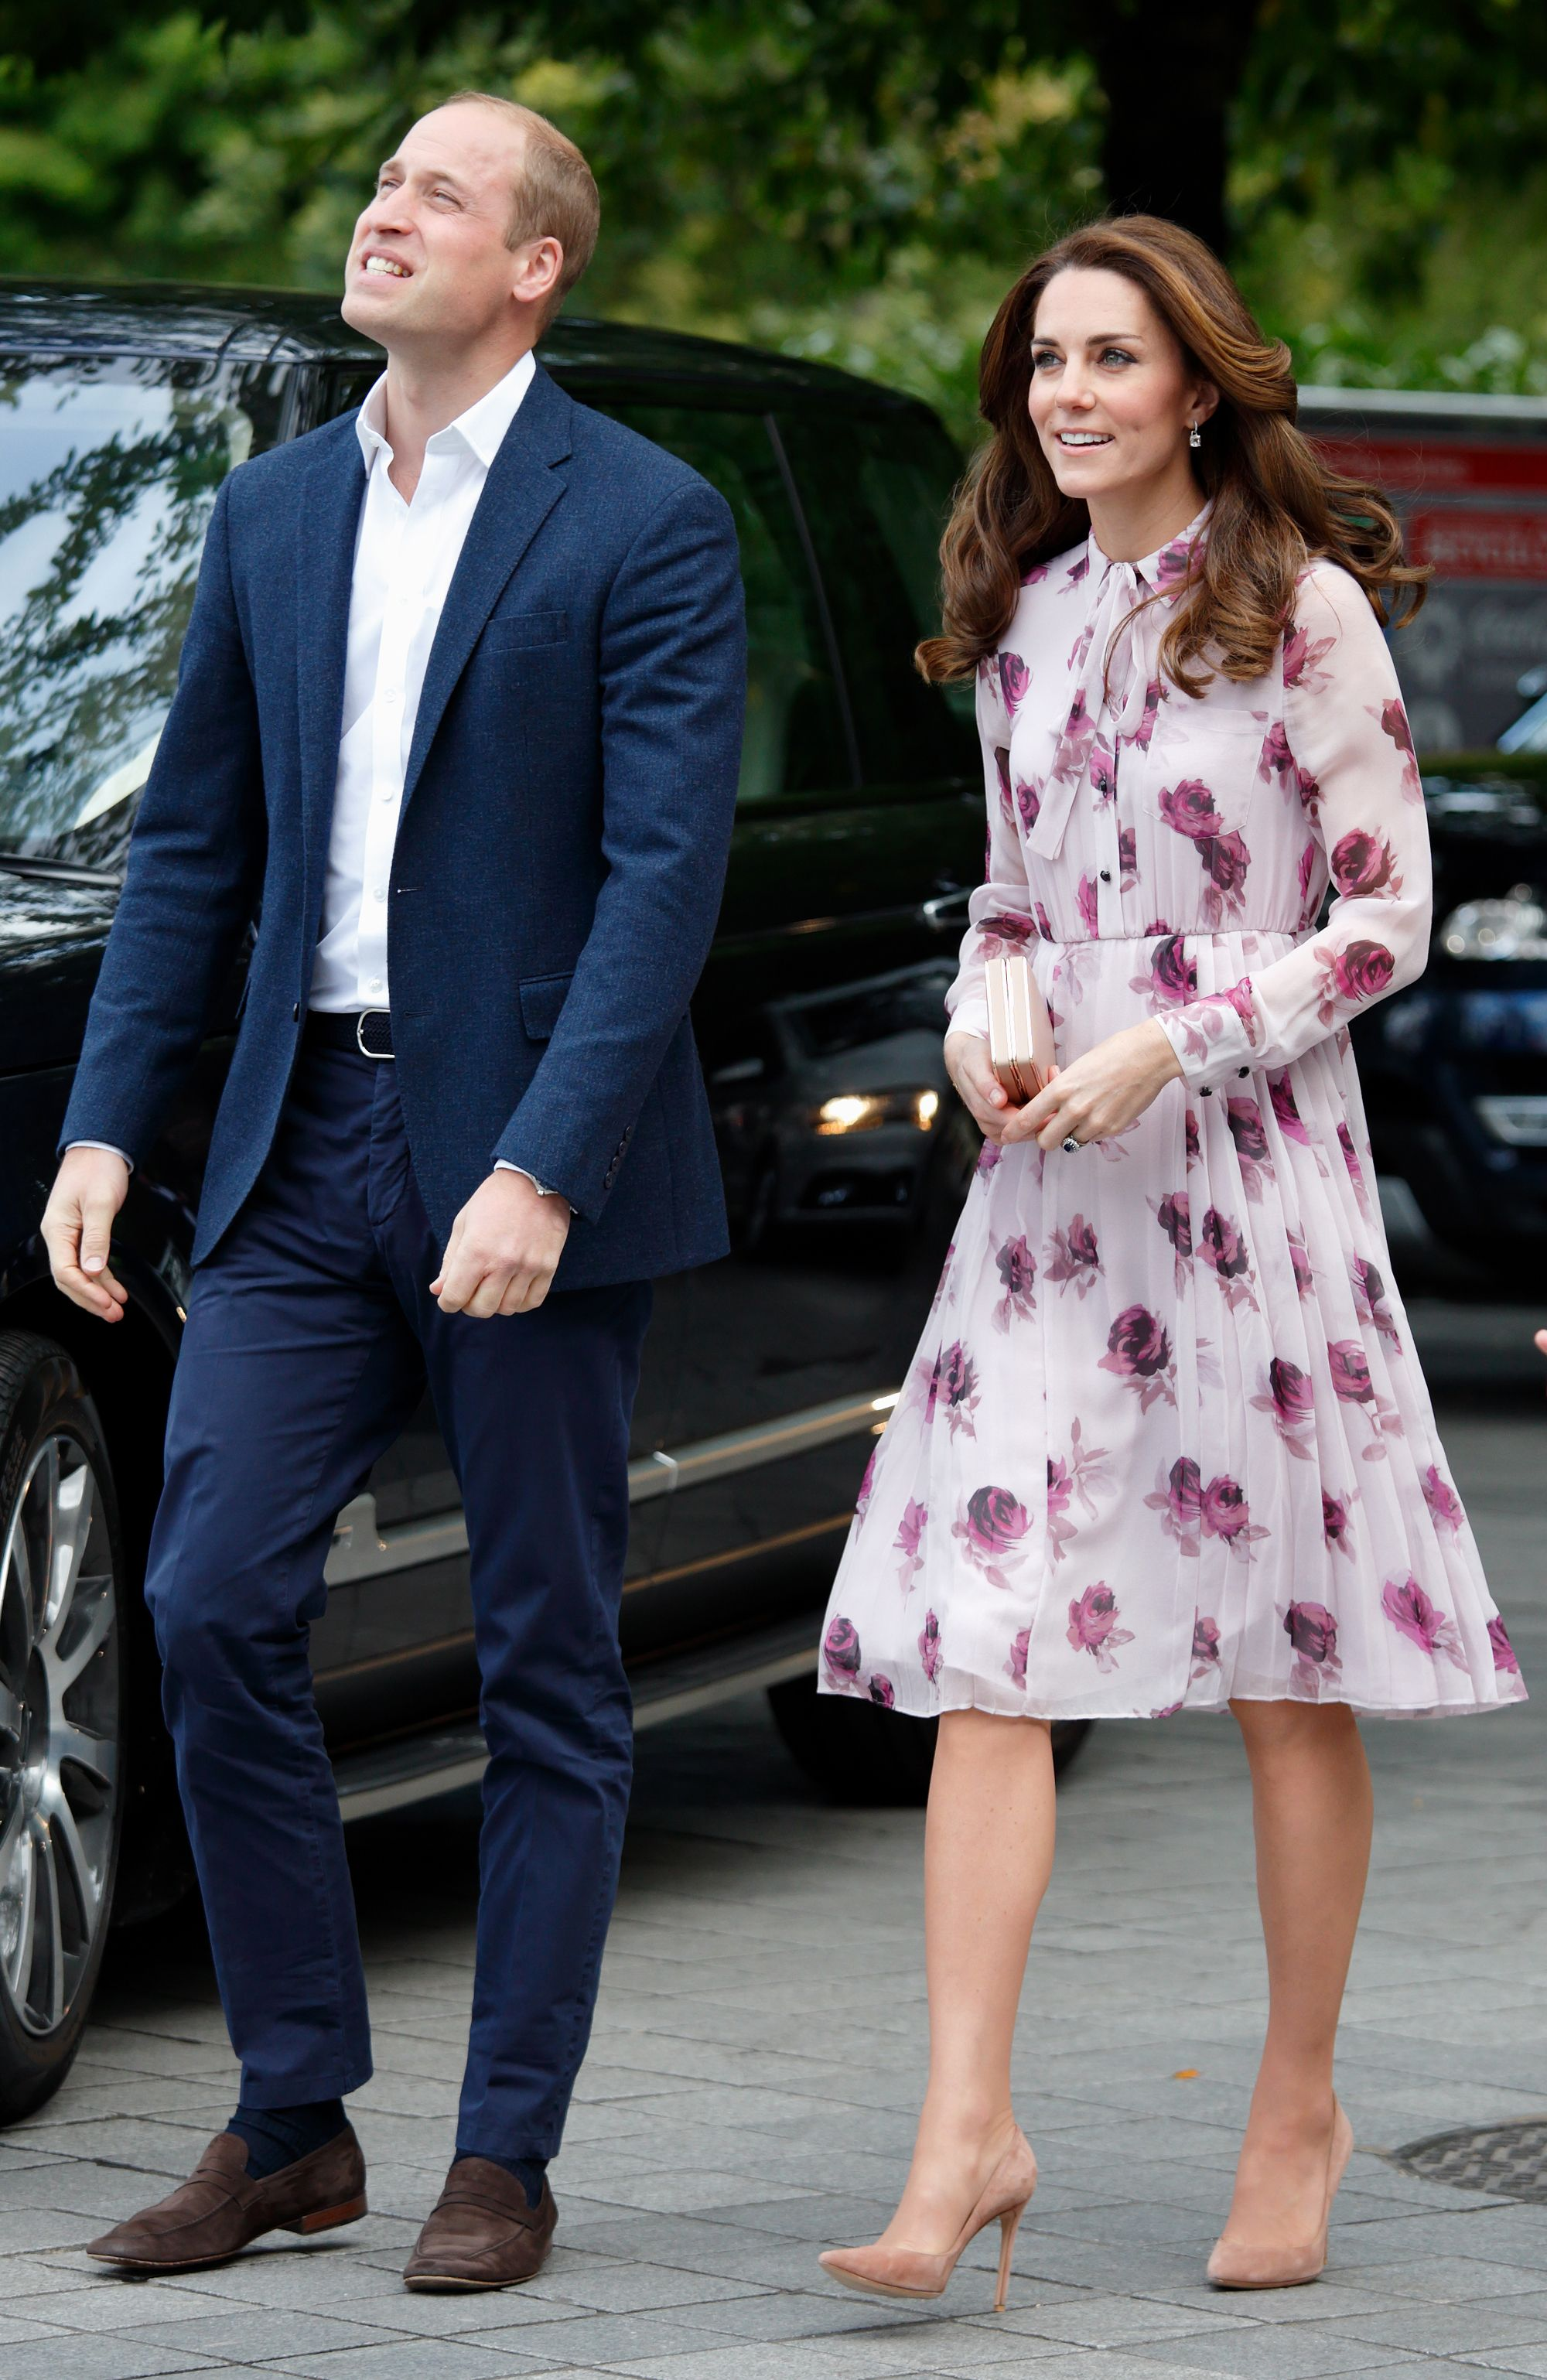 f6890dfac7b Kate Middleton s Favorite Shoes - How to Buy Kate s Boots